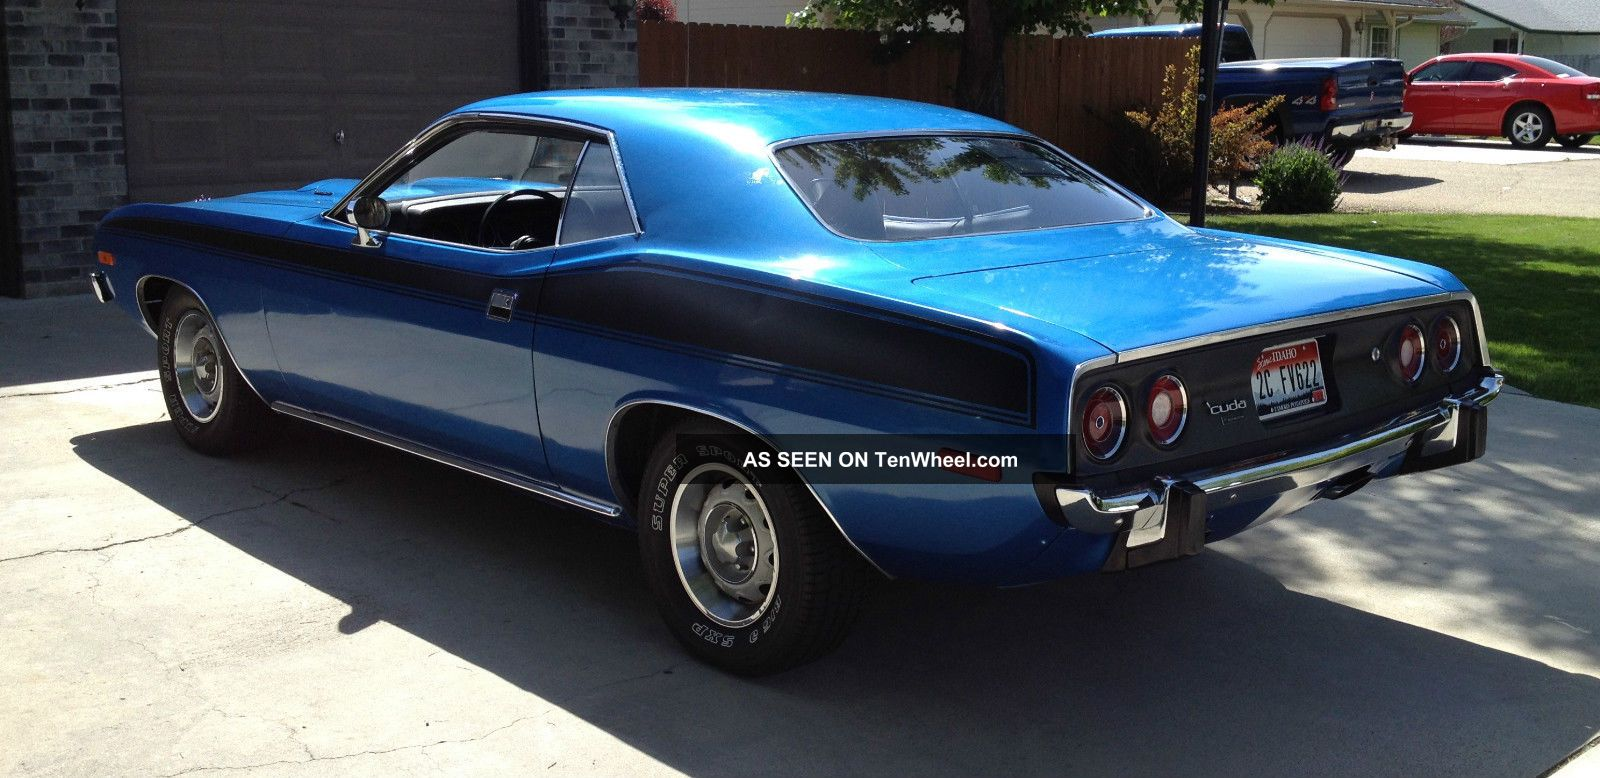 ... 1973 Plymouth Cuda Barracuda photo 4